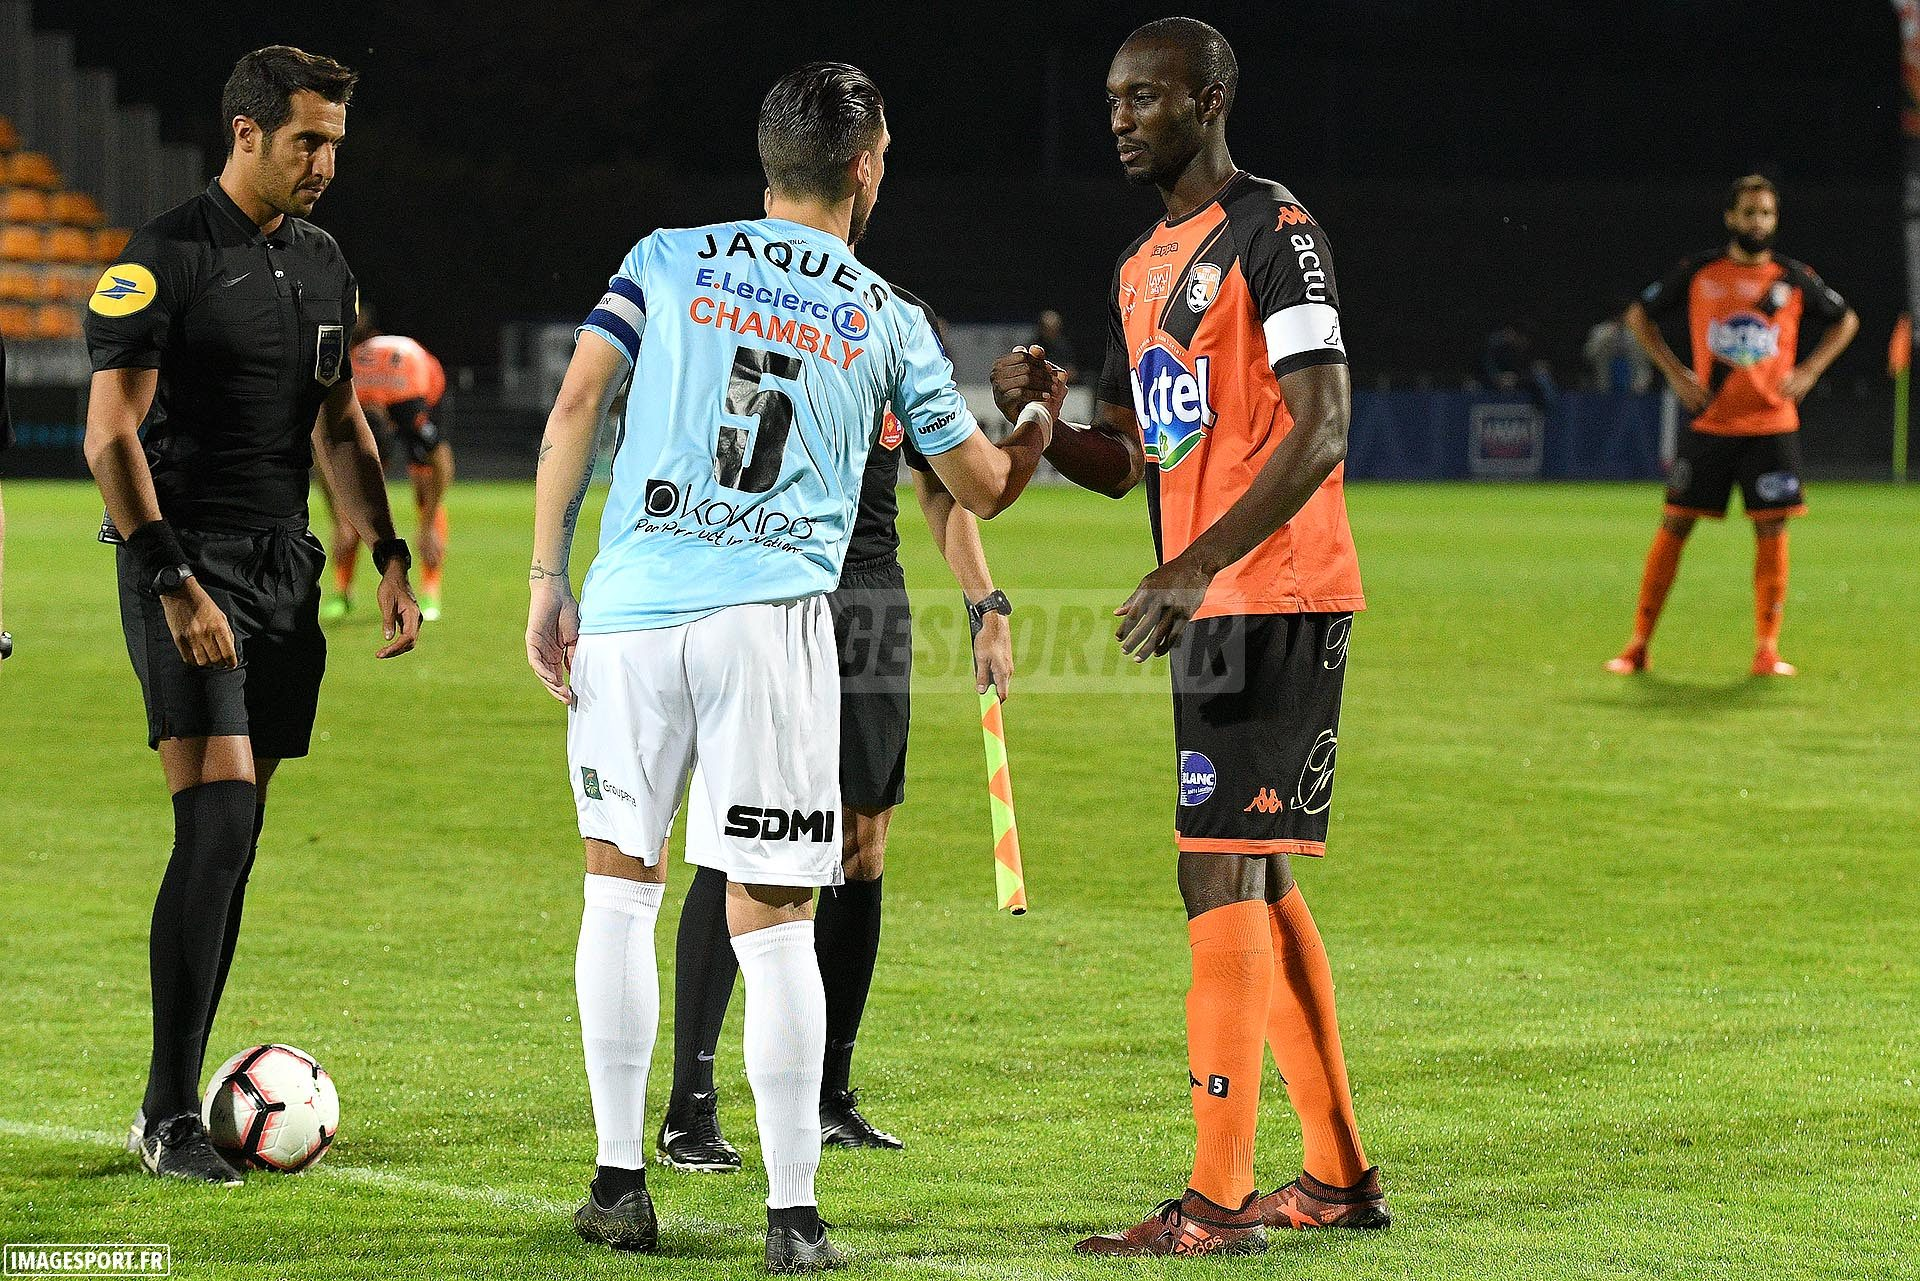 Thibault JAQUES (FC Chambly Oise) / Bira DEMBELE (Stade Lavallois)